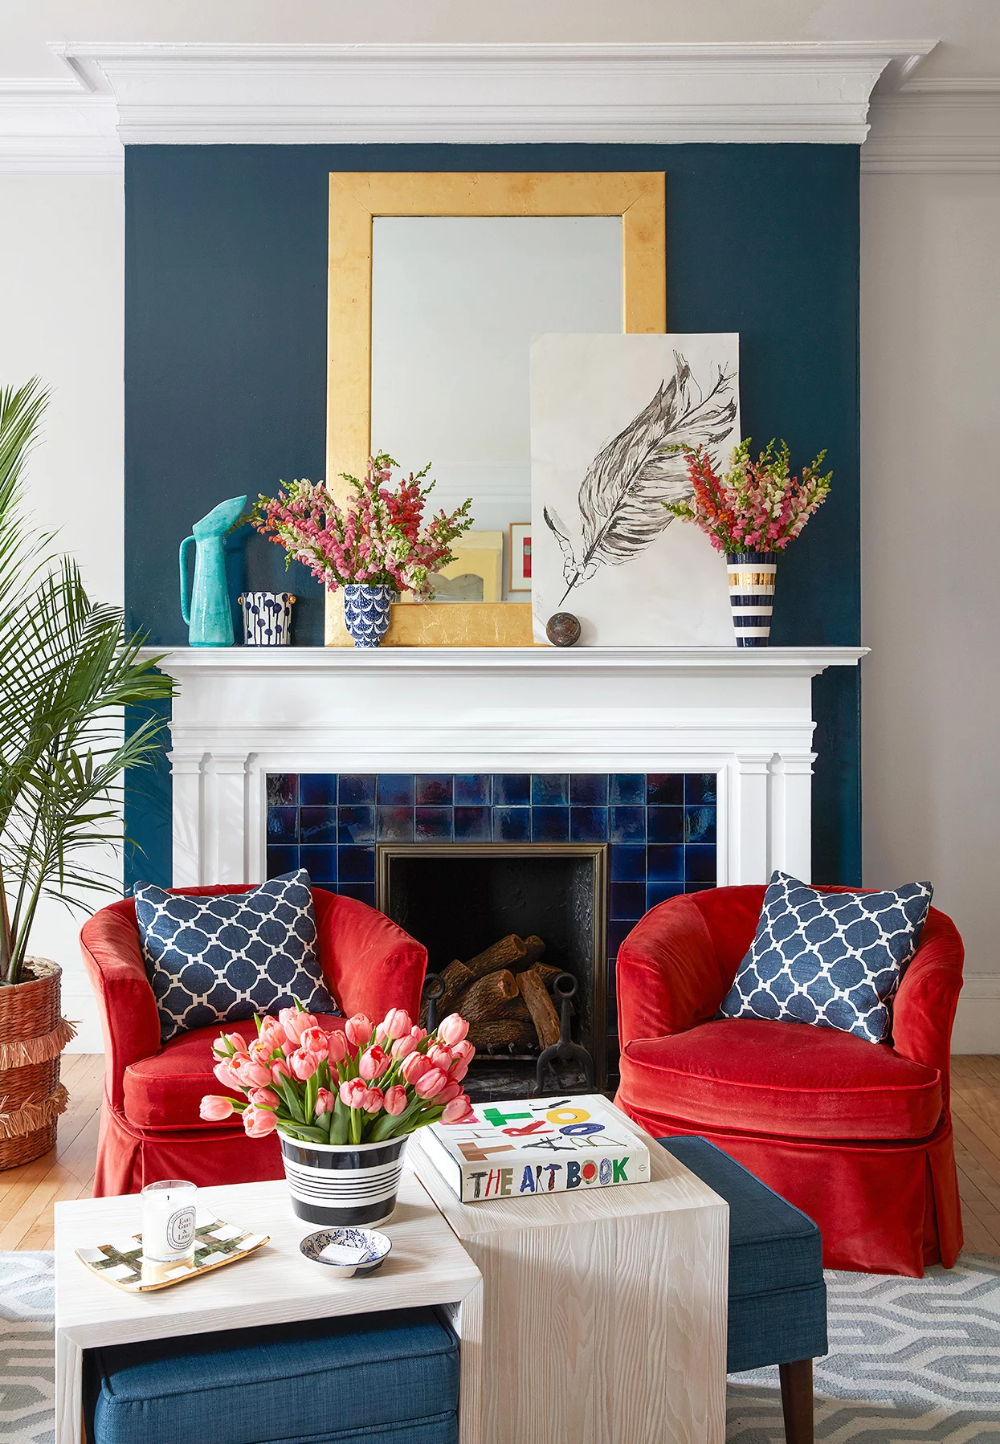 What Colors Go With Red 20 Knockout Combinations To Consider Colors Combinations Knoc Red Living Room Decor Colourful Living Room Blue Living Room Decor